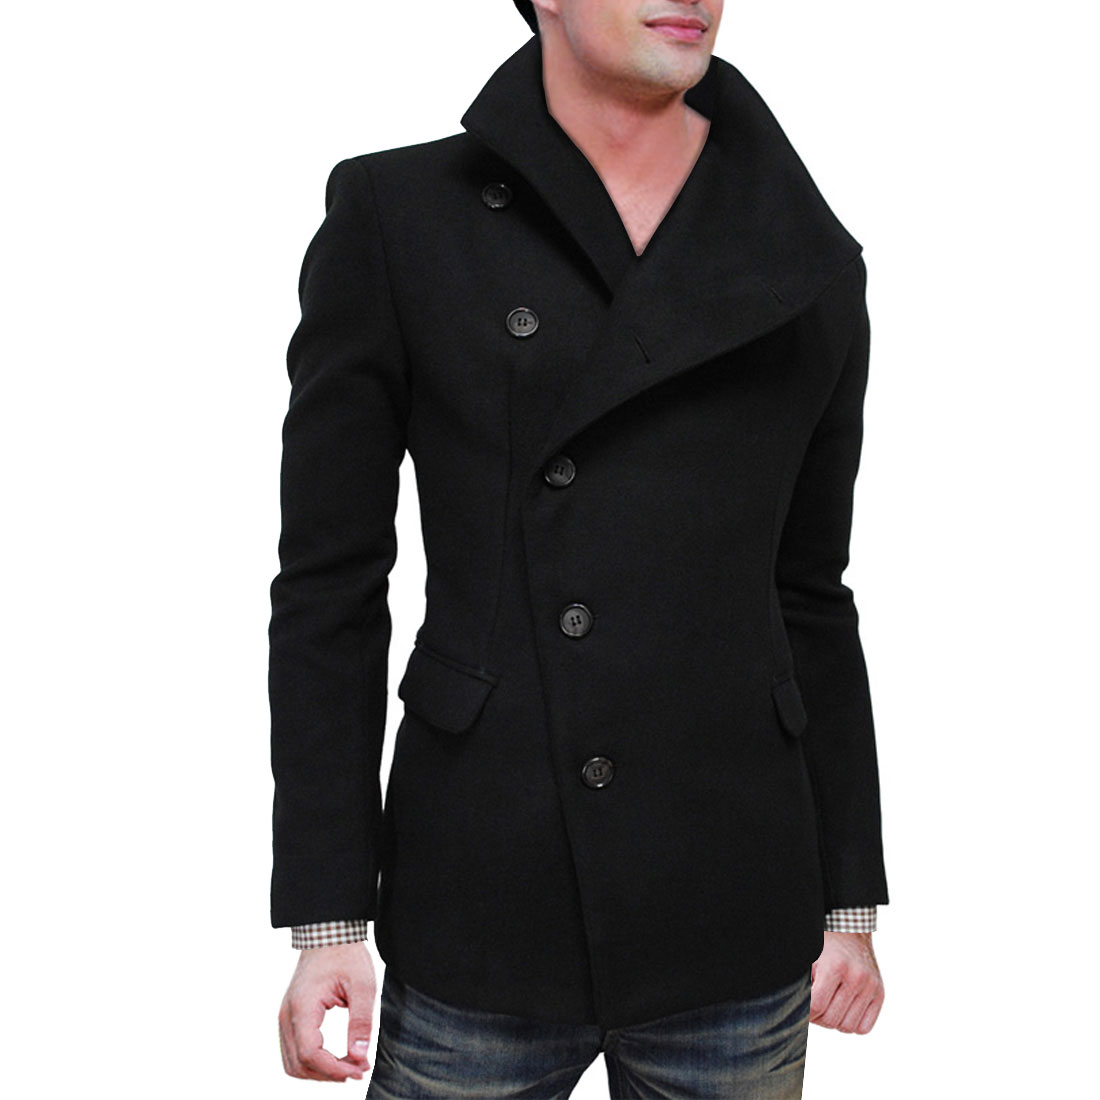 Black M Notched Lapel Flap Pockets Button Front Style Jacket Coat for Men